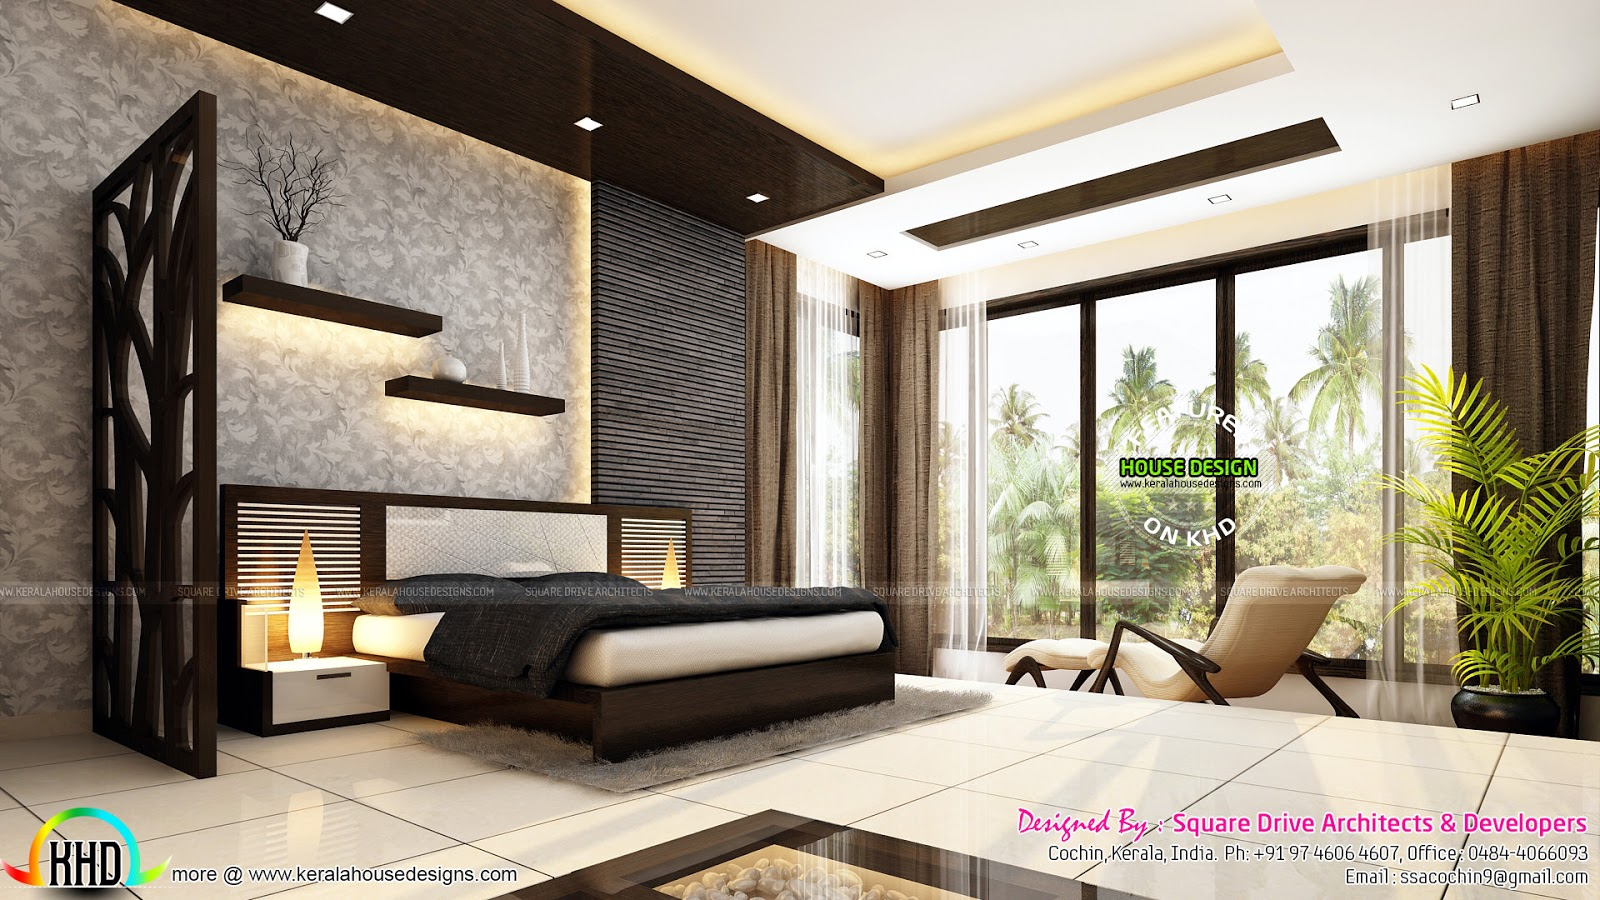 Very beautiful modern interior designs kerala home for Home design bedroom ideas